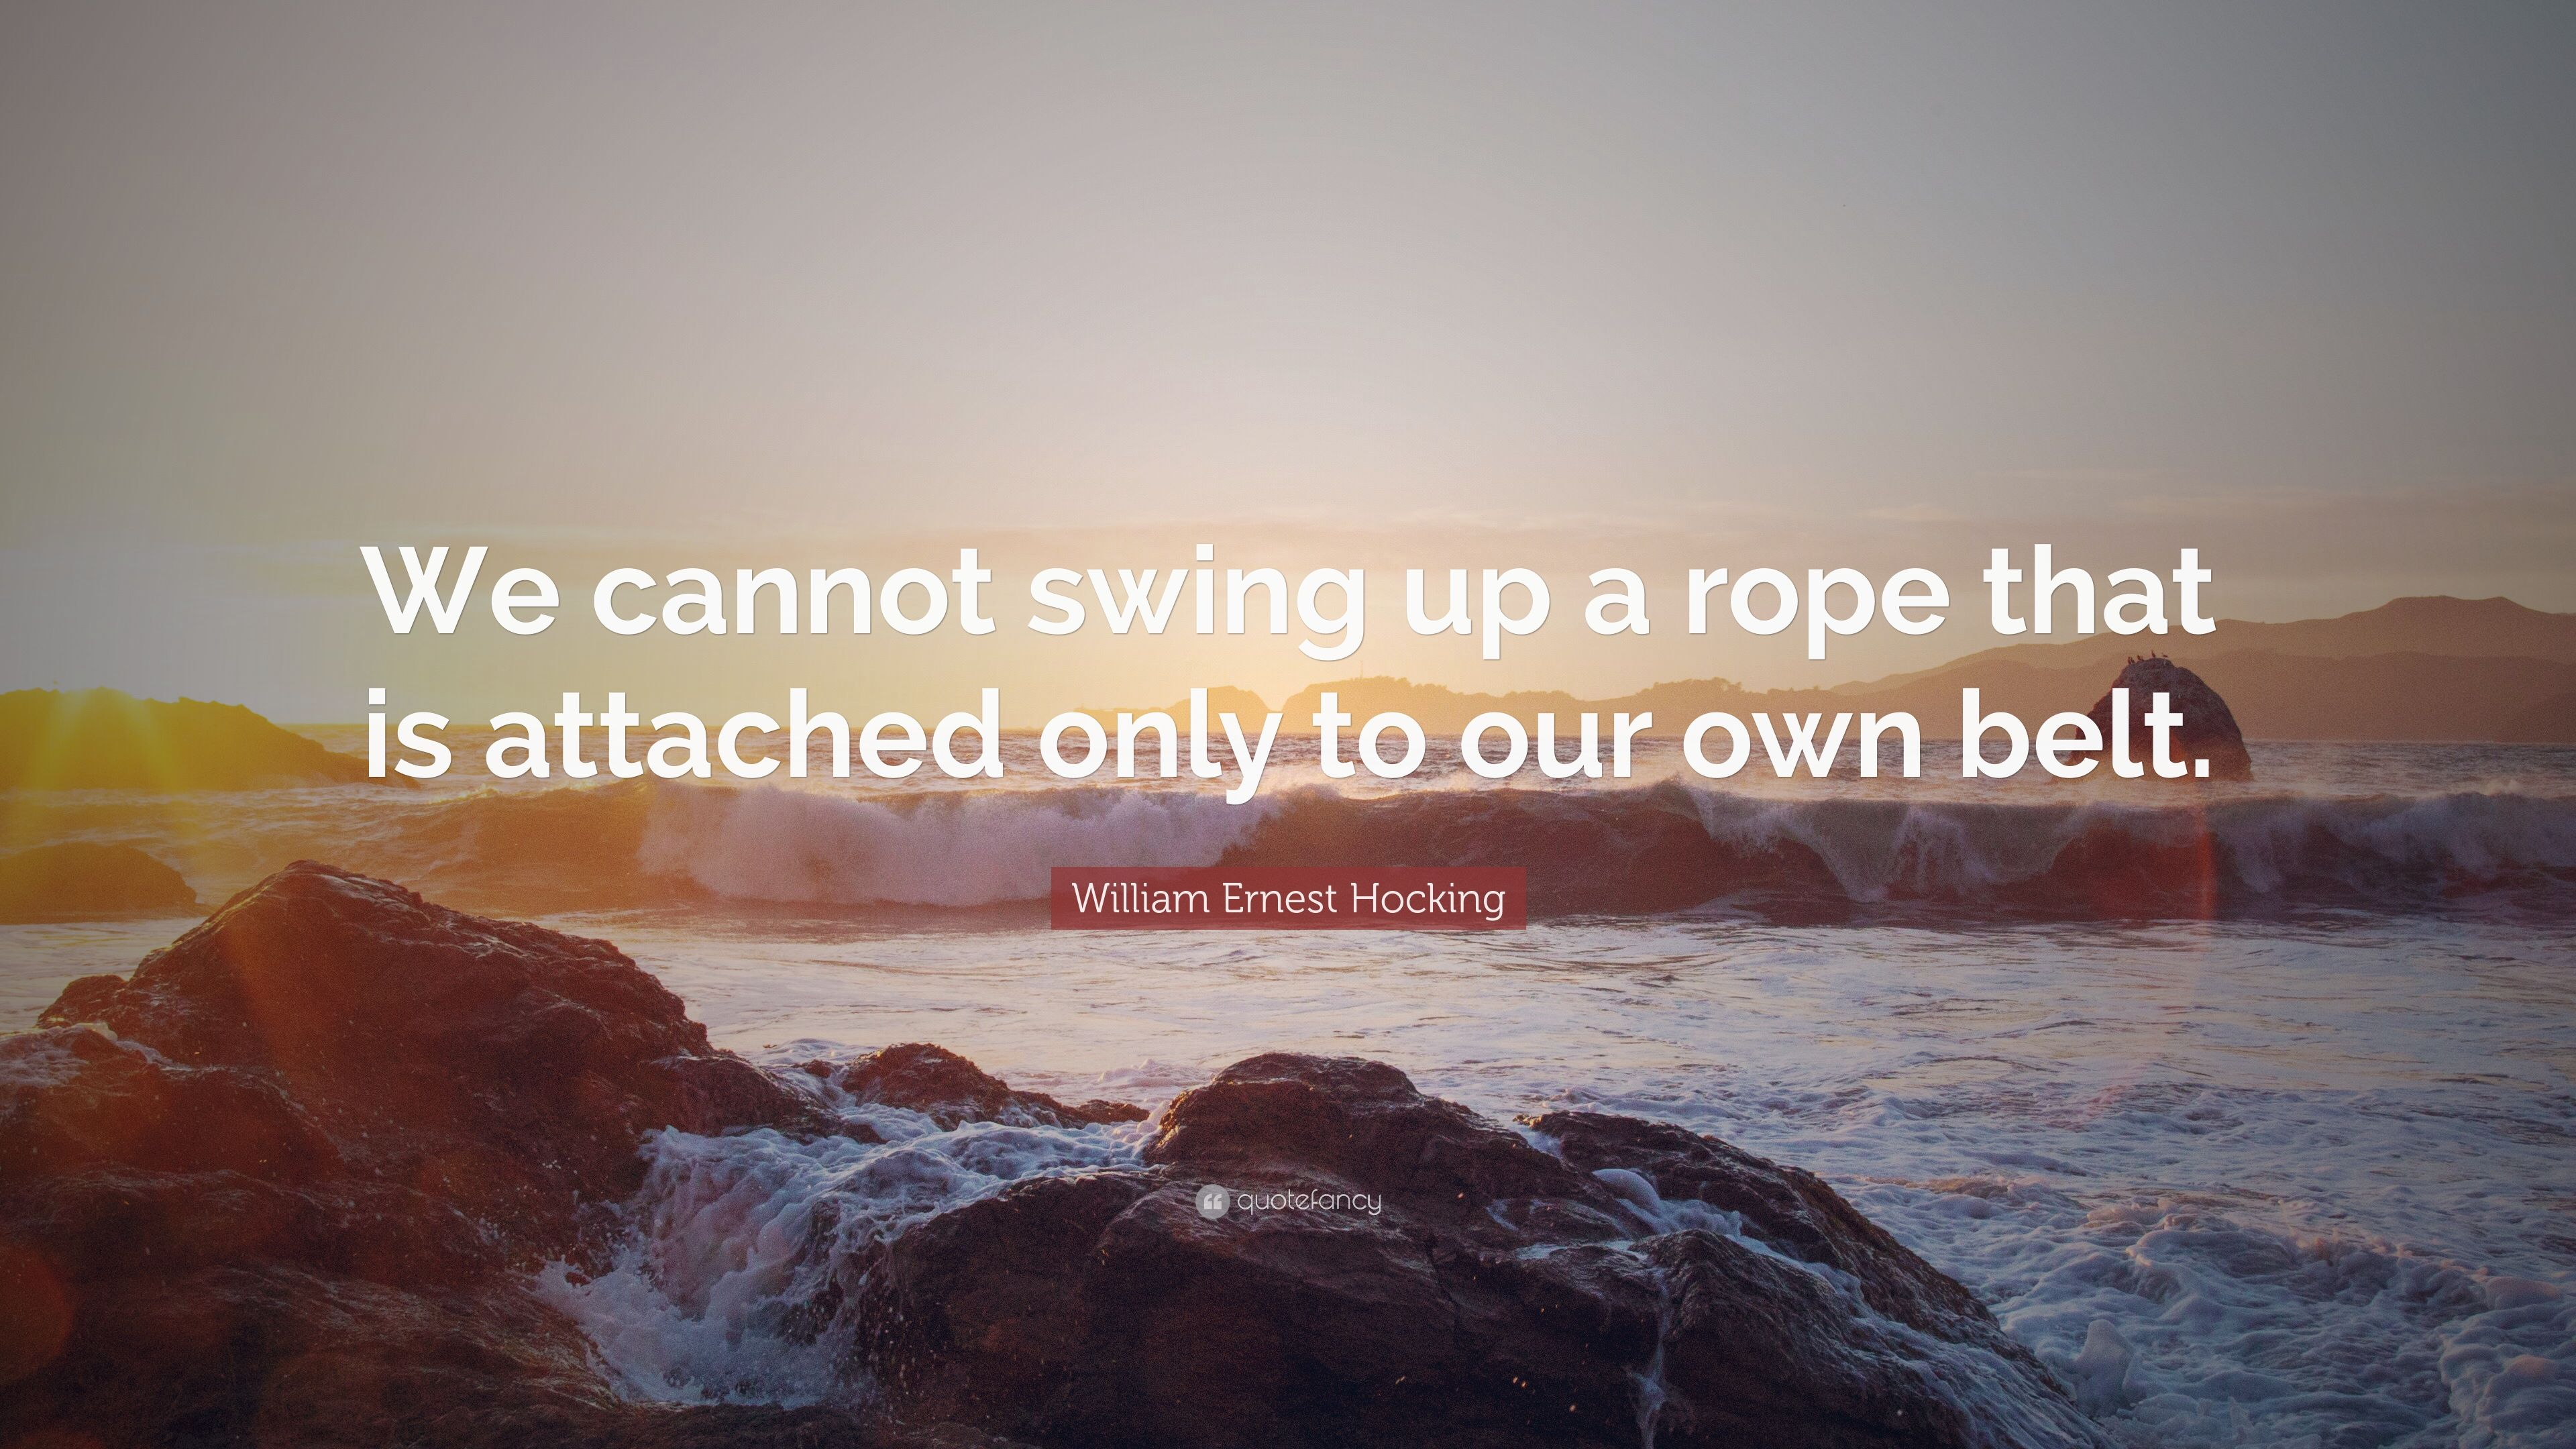 William Ernest Hocking Quote We Cannot Swing Up A Rope That Is